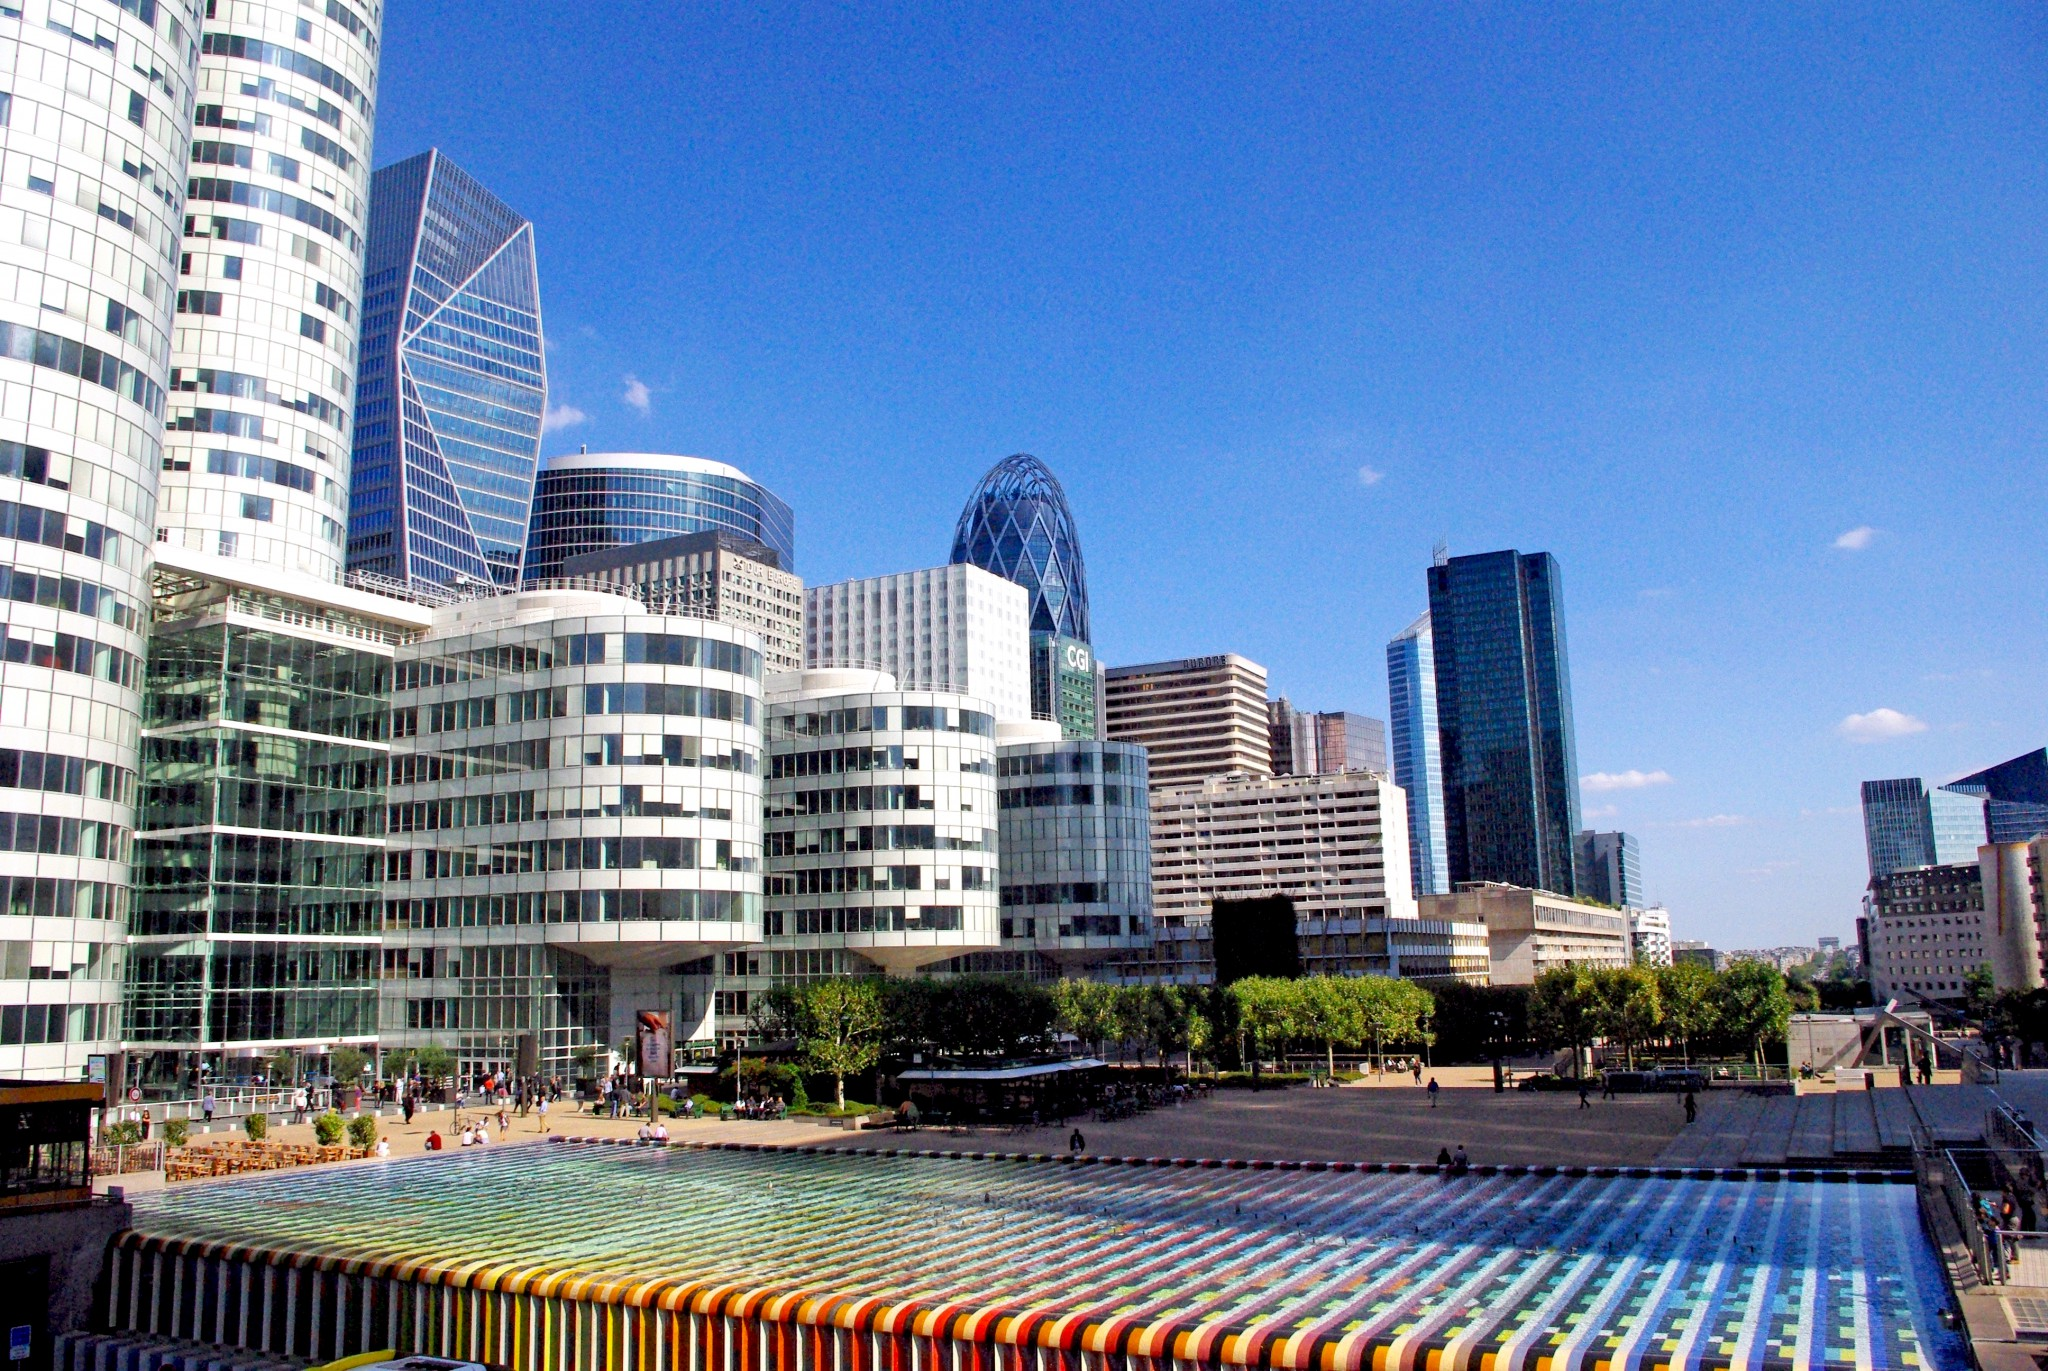 The esplanade of La Défense © French Moments